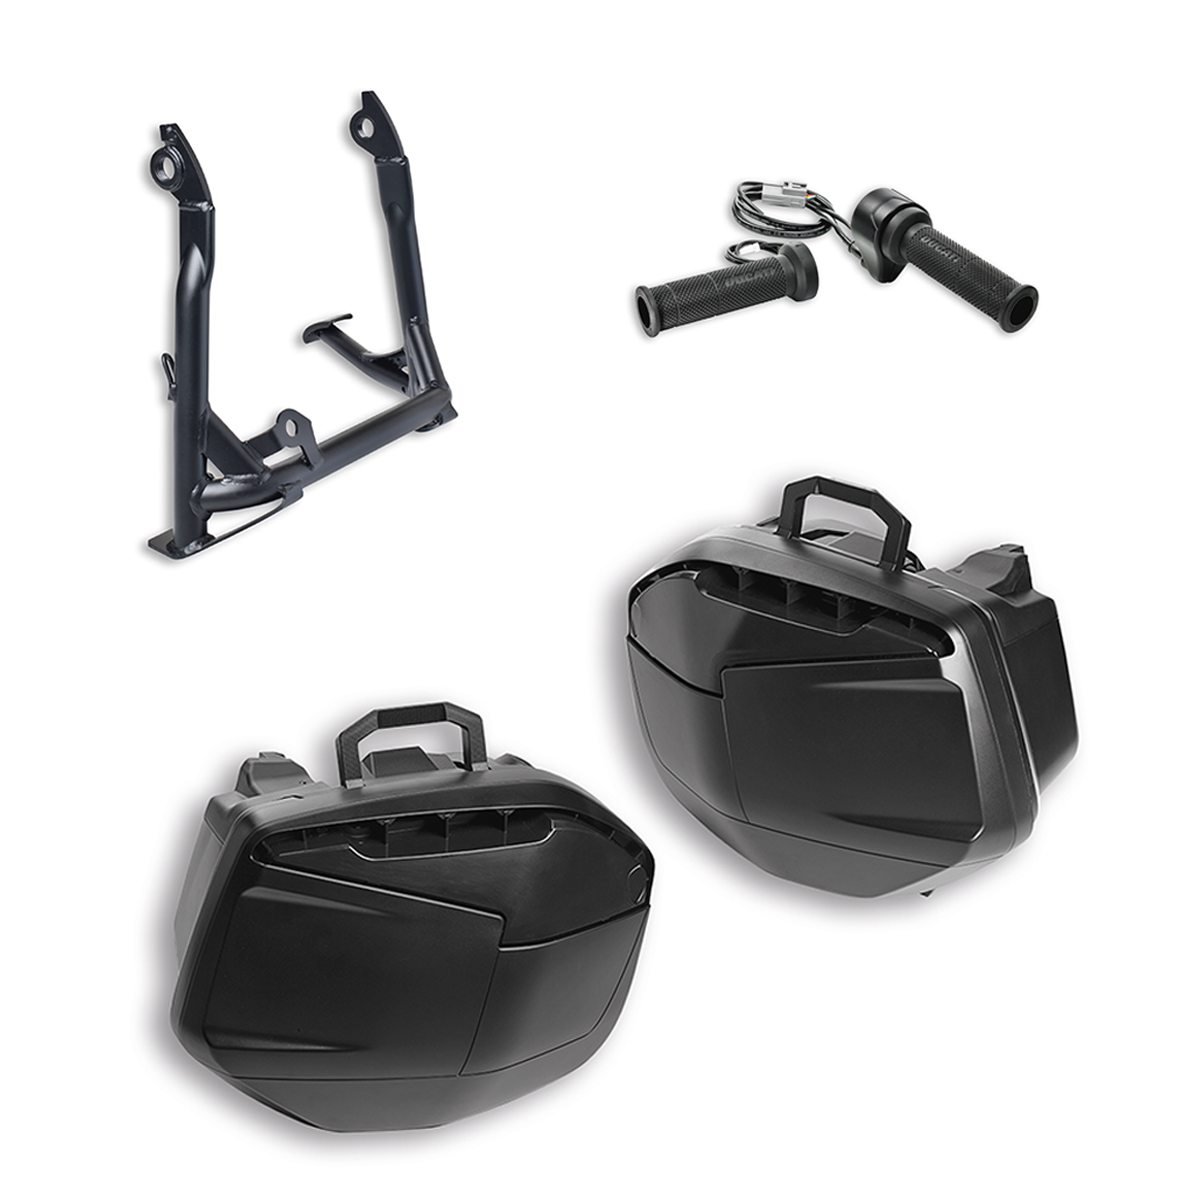 Multistrada 1200 Touring accessory package.